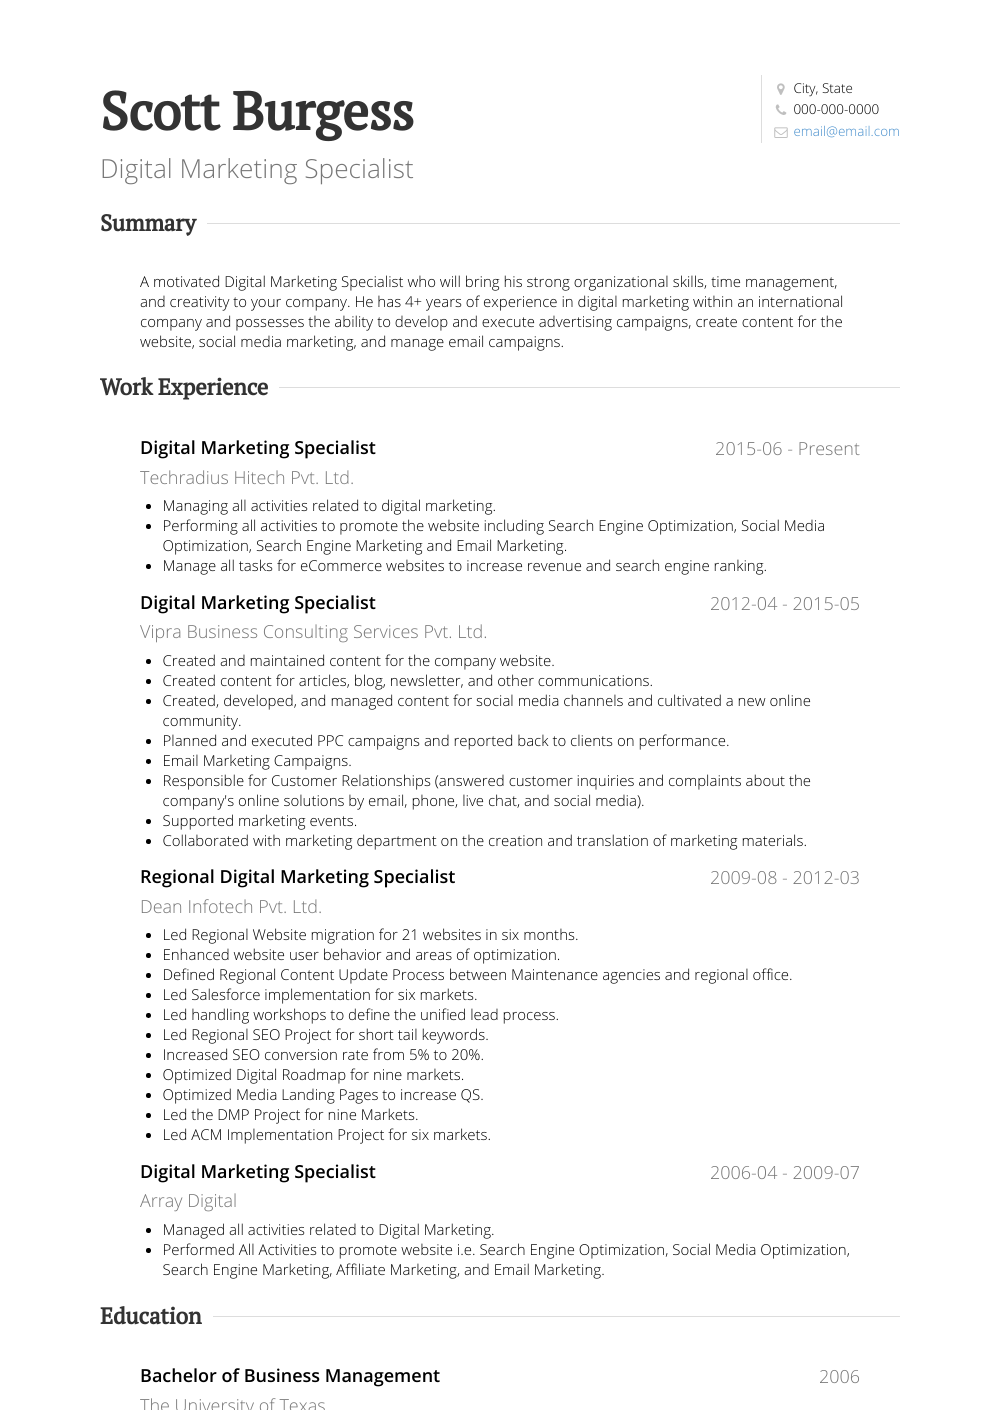 Digital Marketing Resume Sample and Template